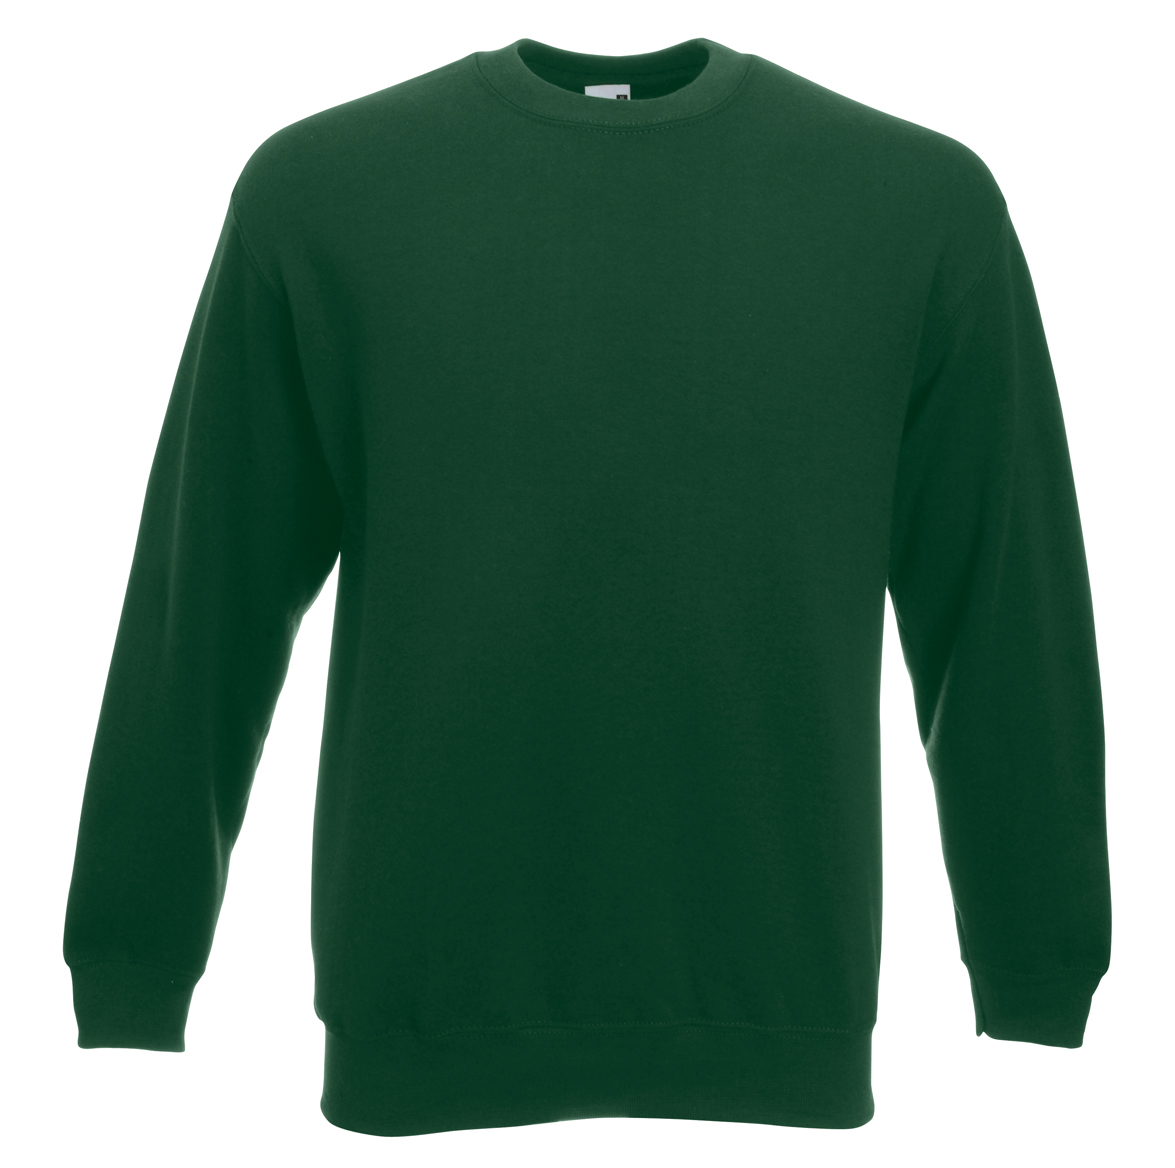 Fruit of the Loom Set-In Sweater 622020 Bottle Green